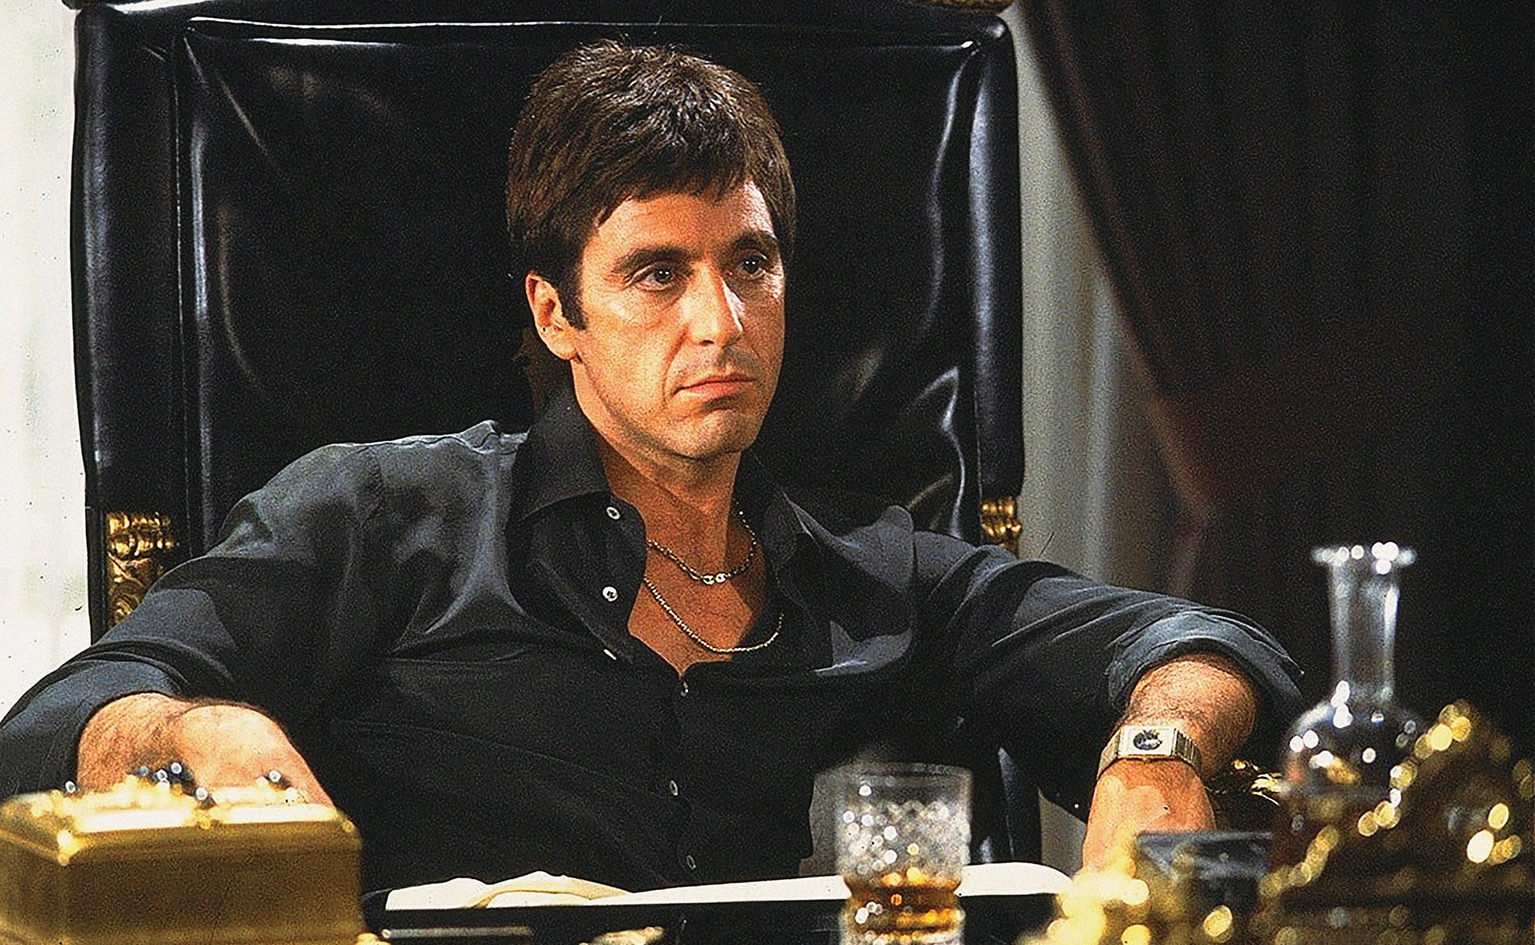 AL_PACINO_AS_ANTONIO_TONY_MONTANNA_SCARFACE_MOVIE_WALL_ART